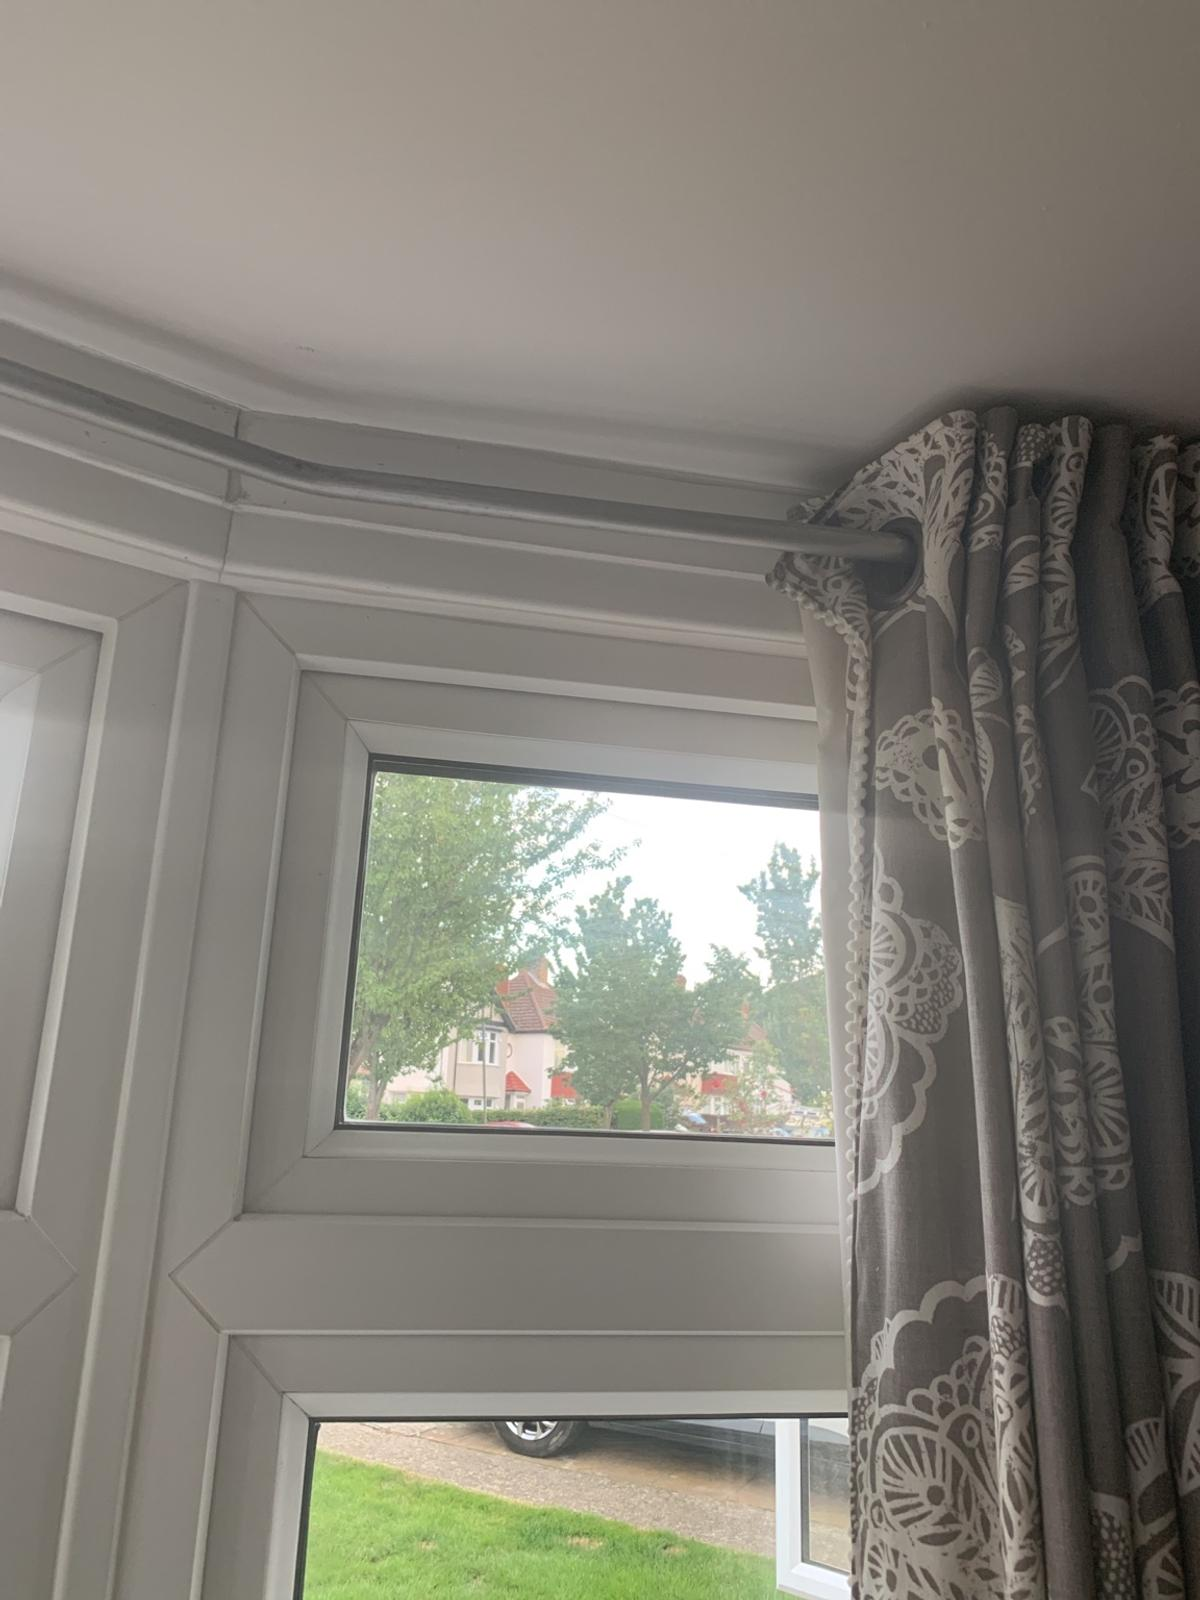 Bay Window Curtain Pole In Br4 Bromley For 20 00 For Sale Shpock